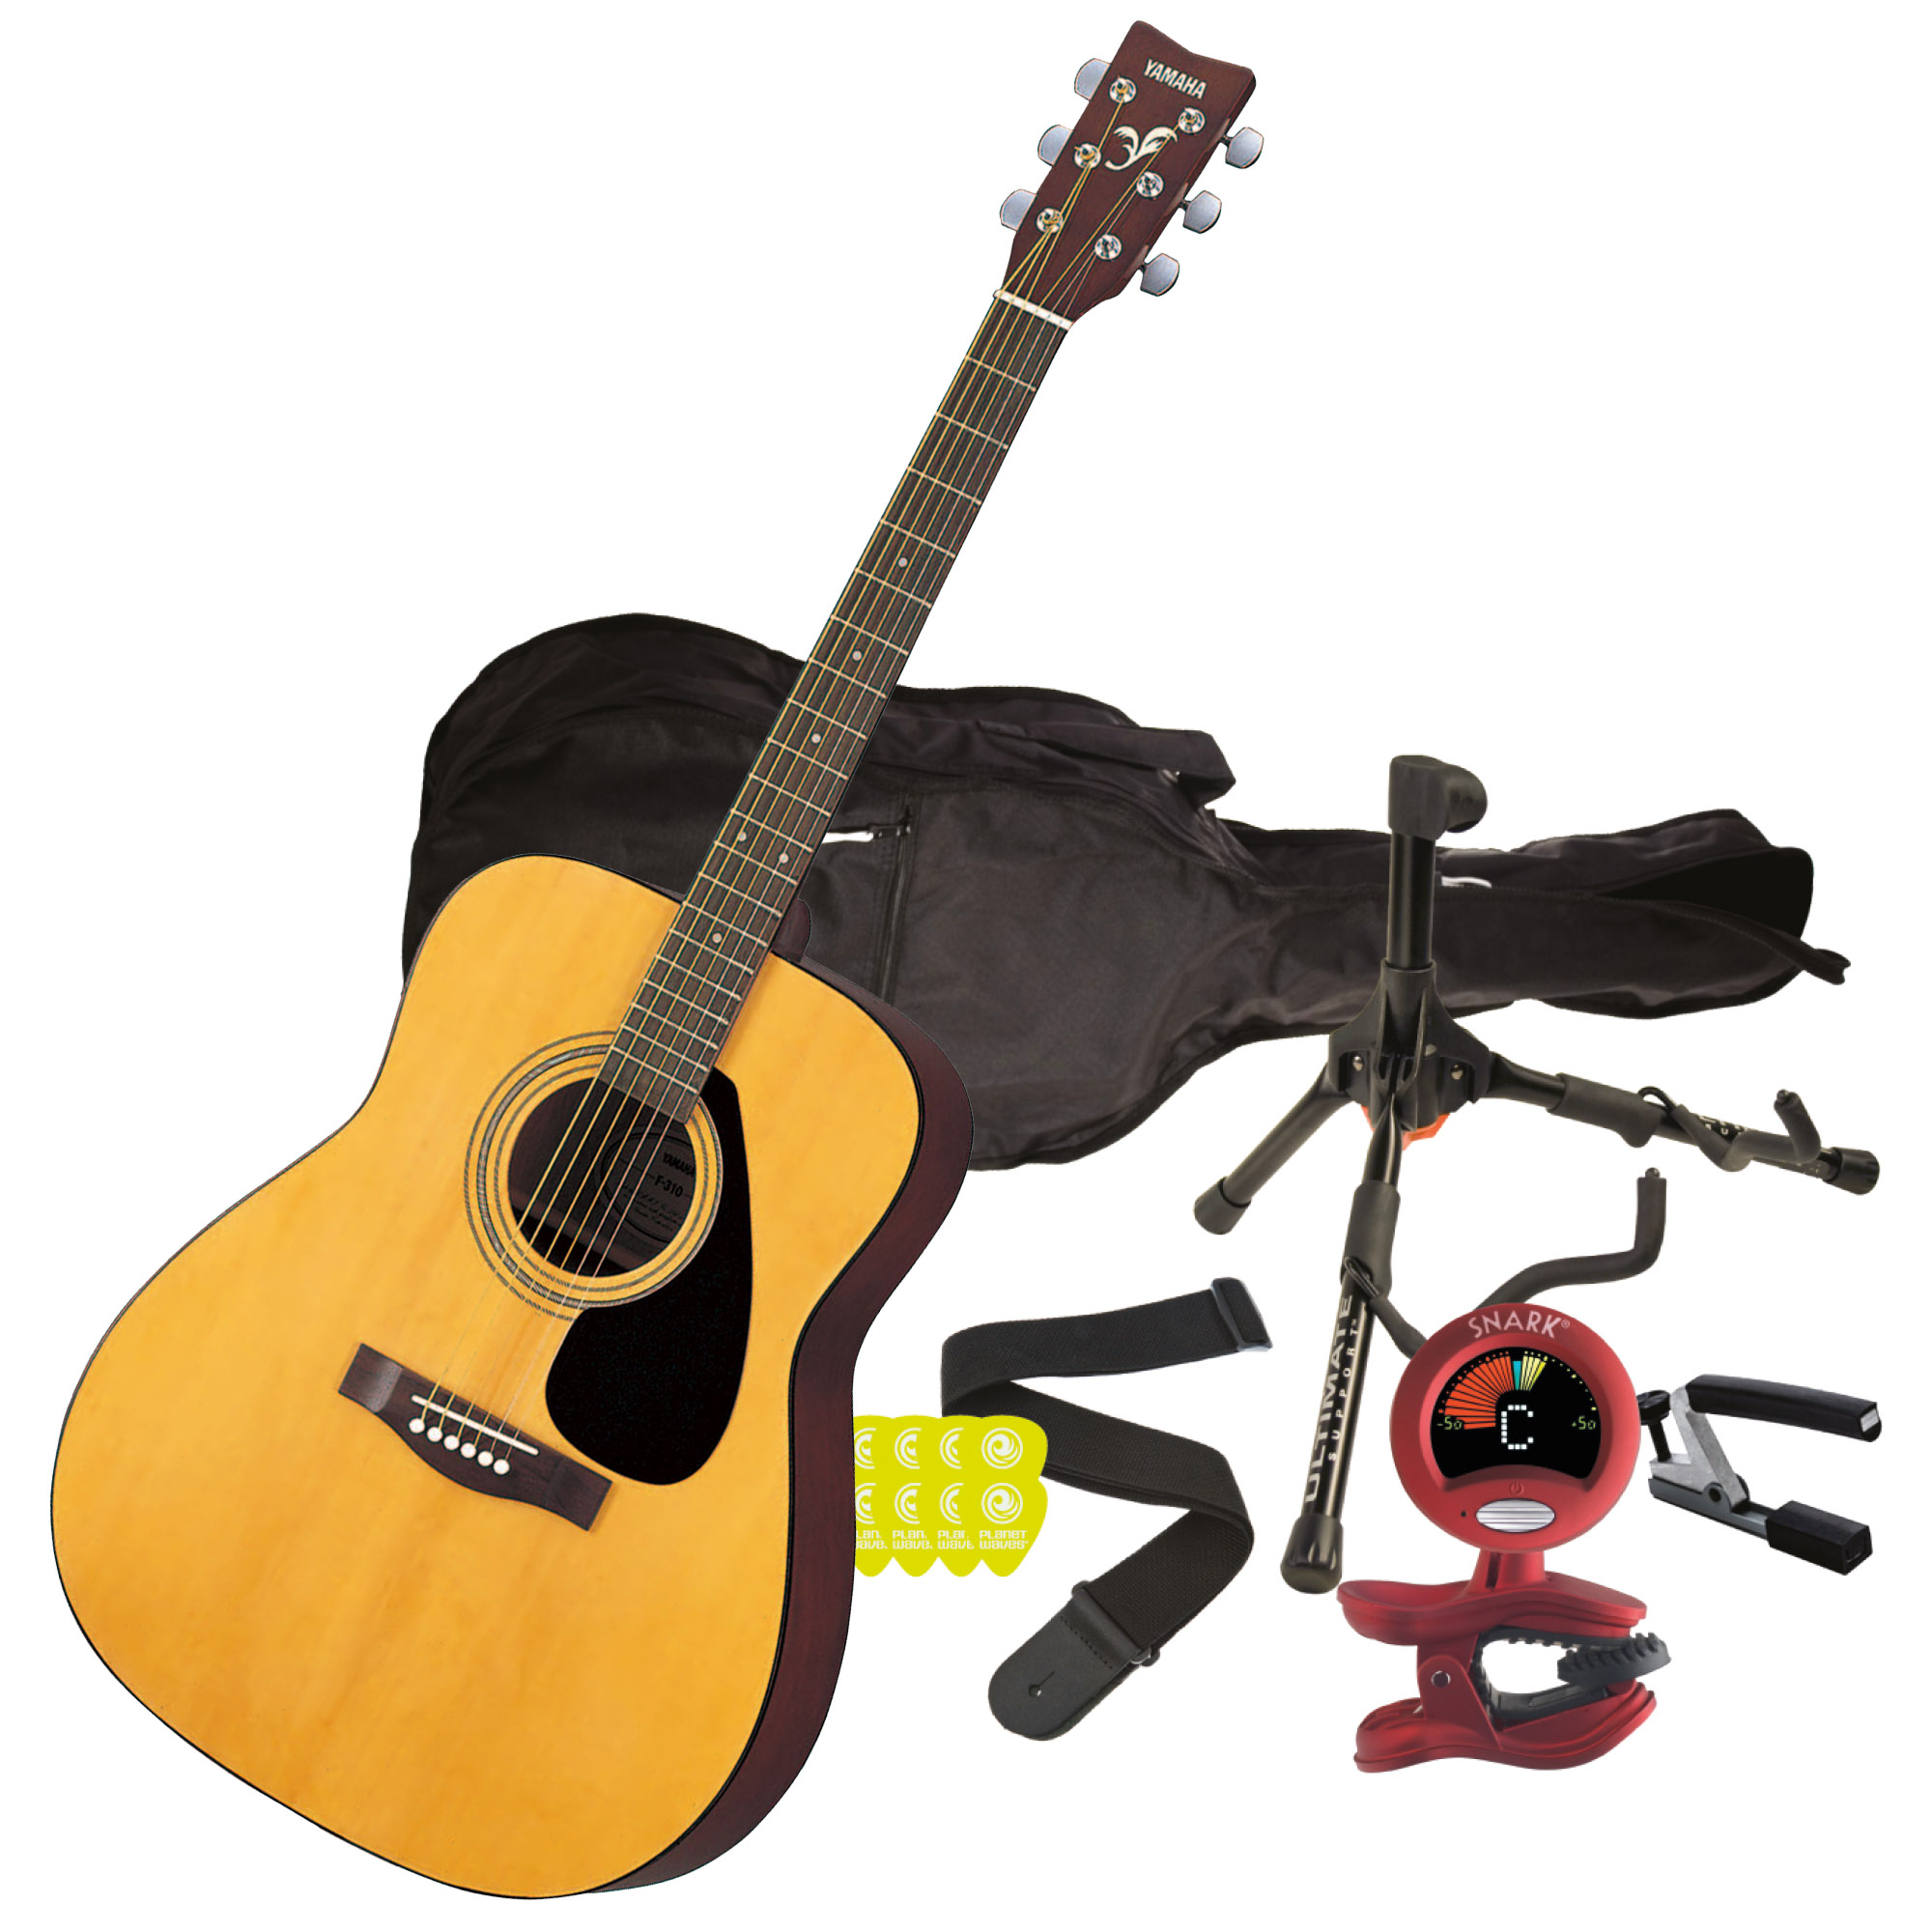 Yamaha f310 acoustic guitar beginner package in natural for Yamaha fs 310 guitar